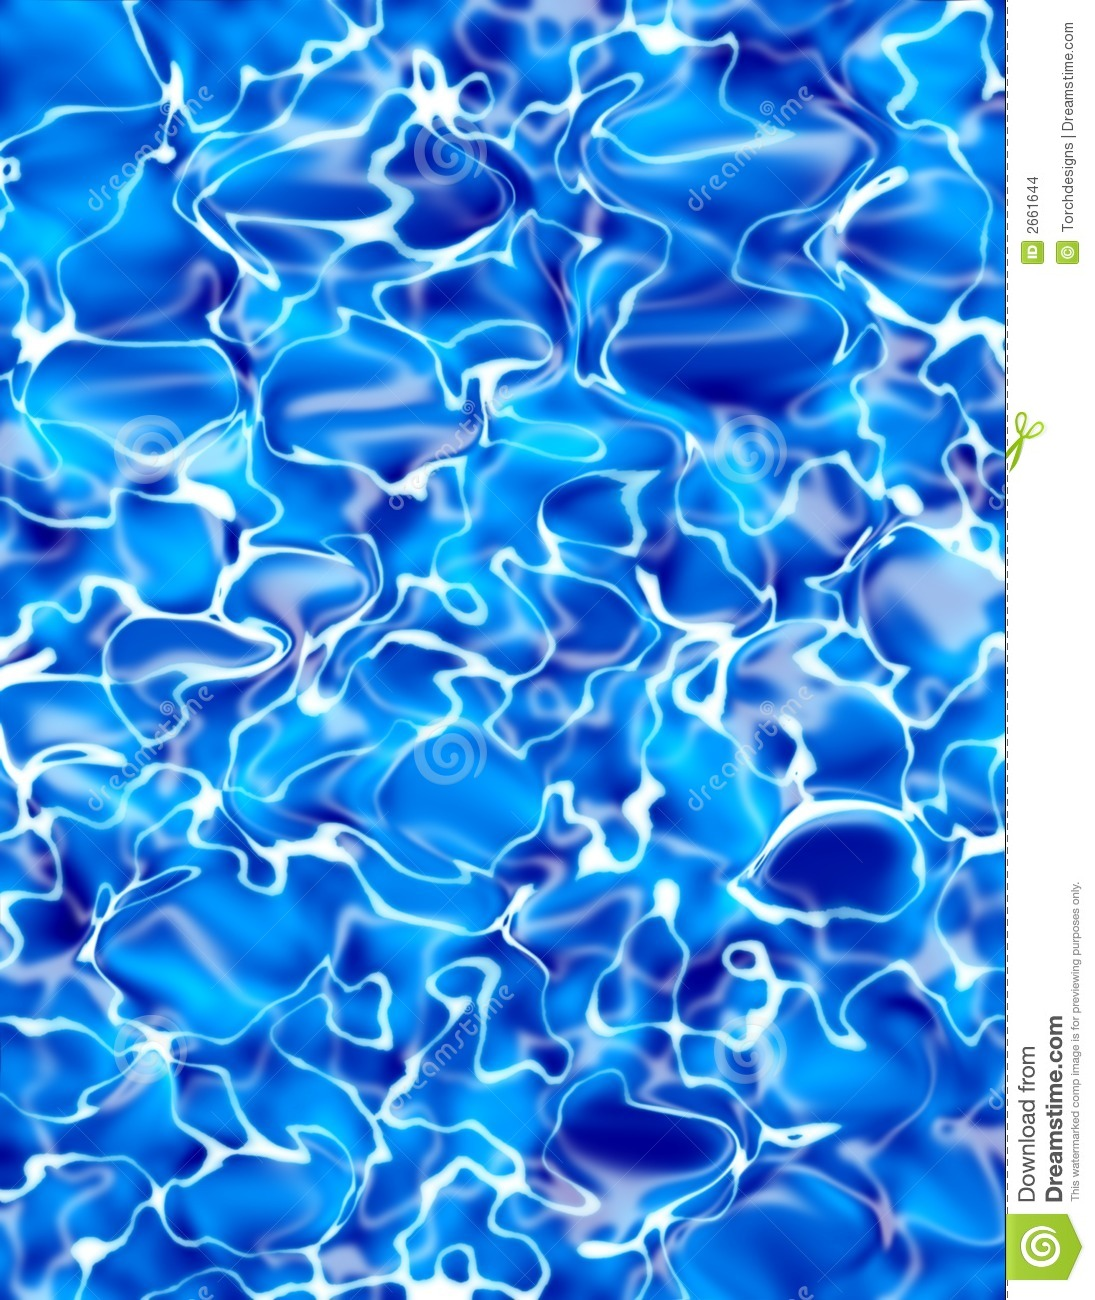 Blue Water Illustration Stock Illustration Illustration